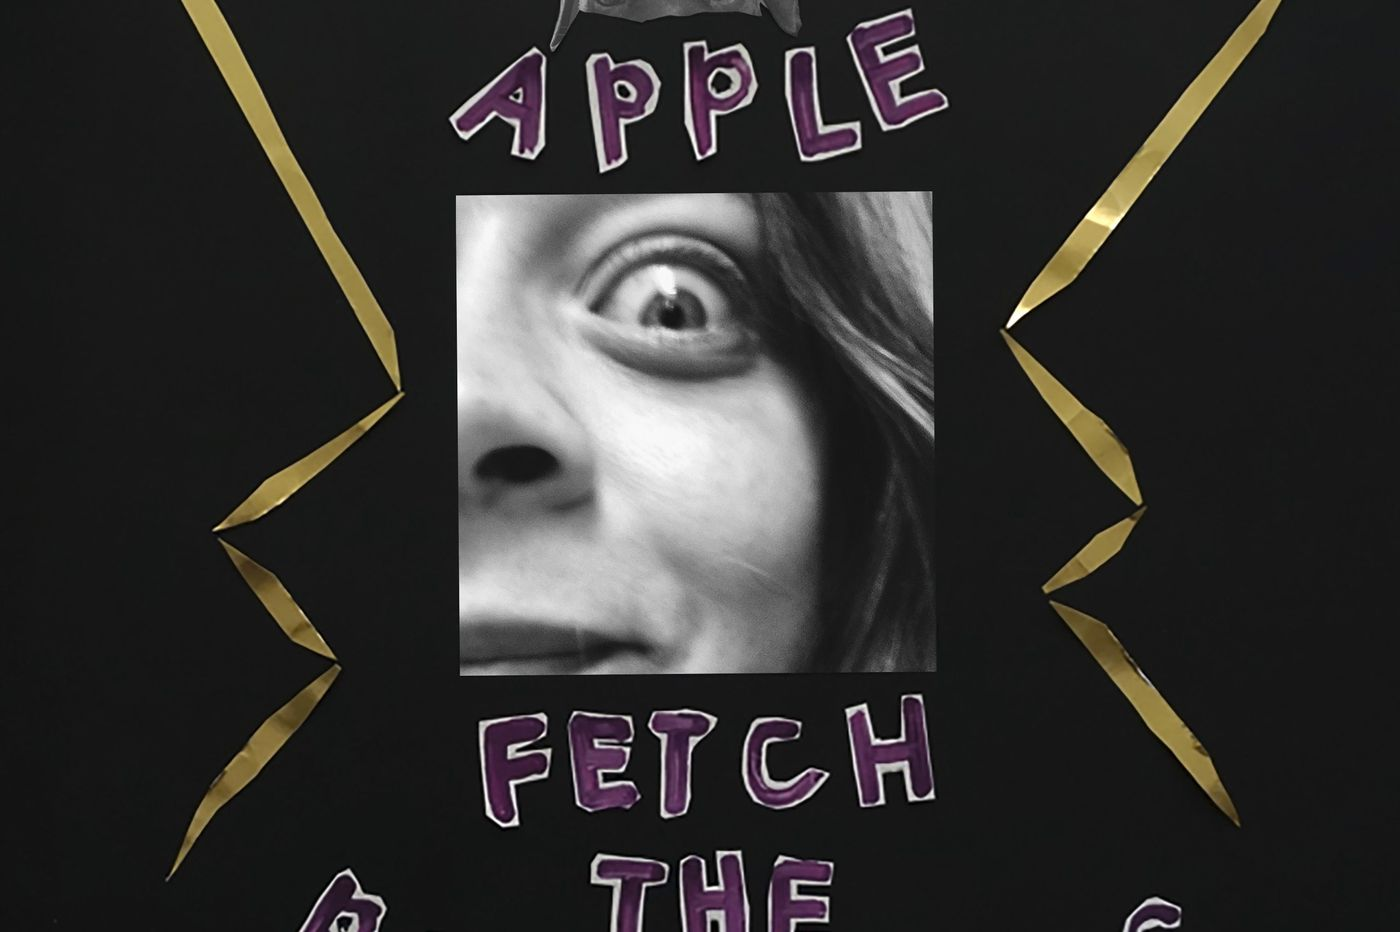 Album reviews: Fiona Apple is extraordinary again on the new 'Fetch the Bolt Cutters'